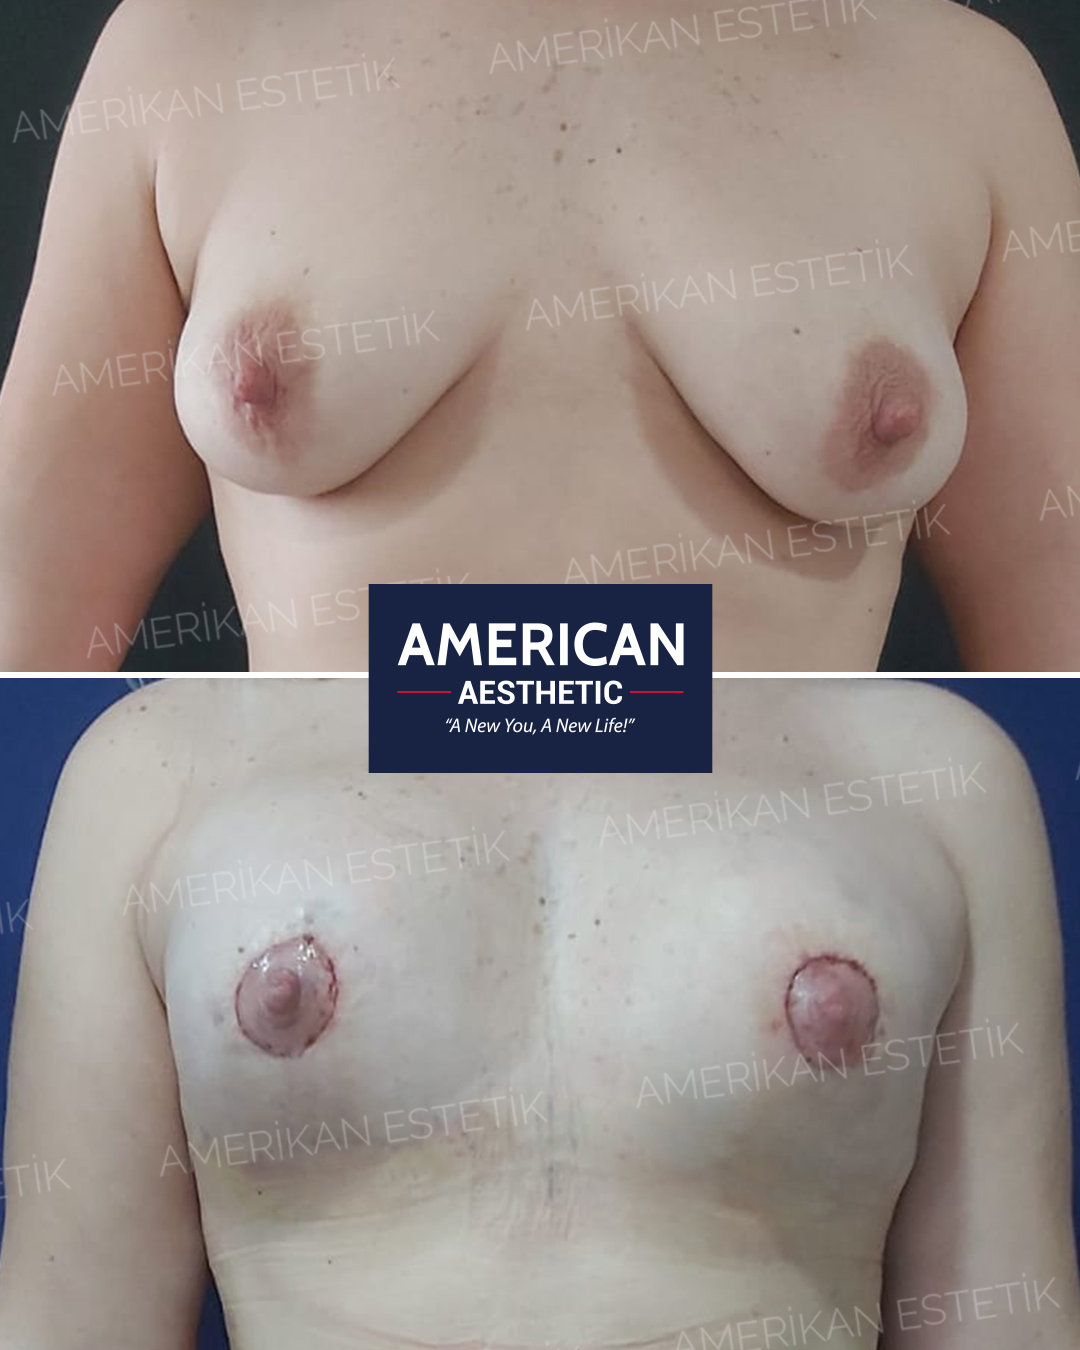 Aesthetic of Breast Lifting Treatment